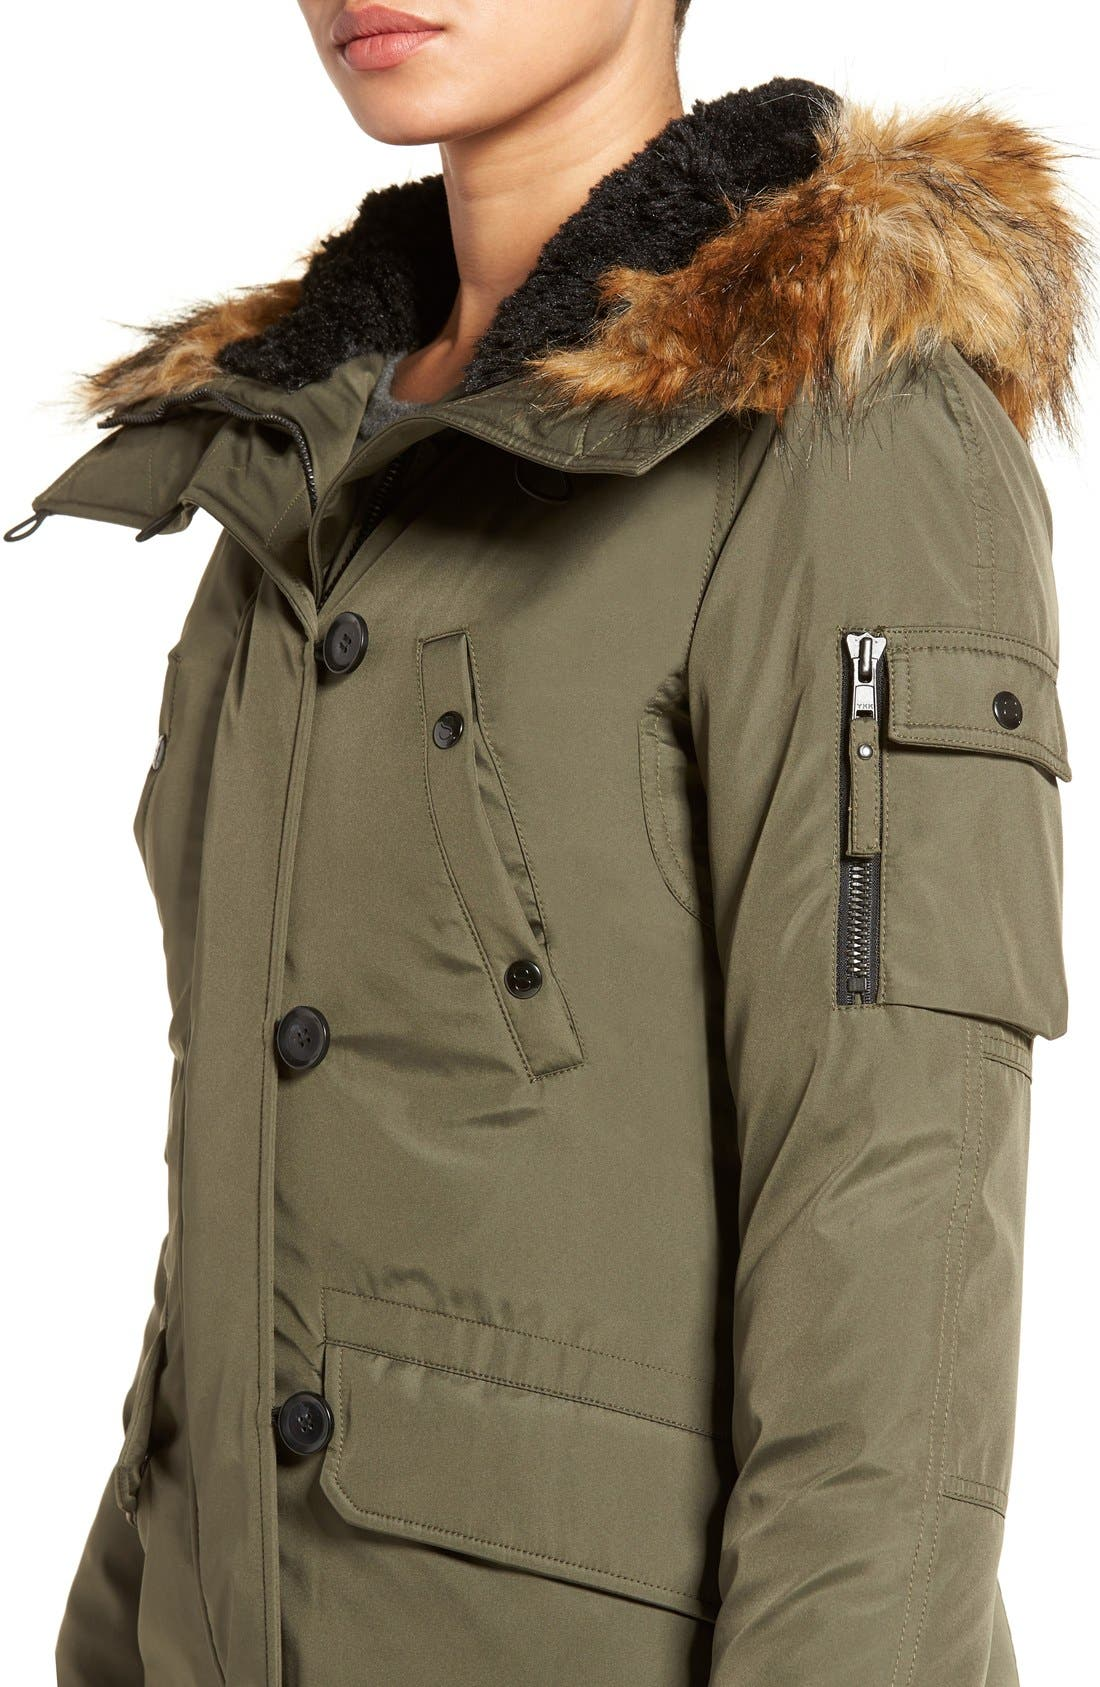 S13 'Alaska' Parka with Faux Fur Trim Hood,                             Alternate thumbnail 4, color,